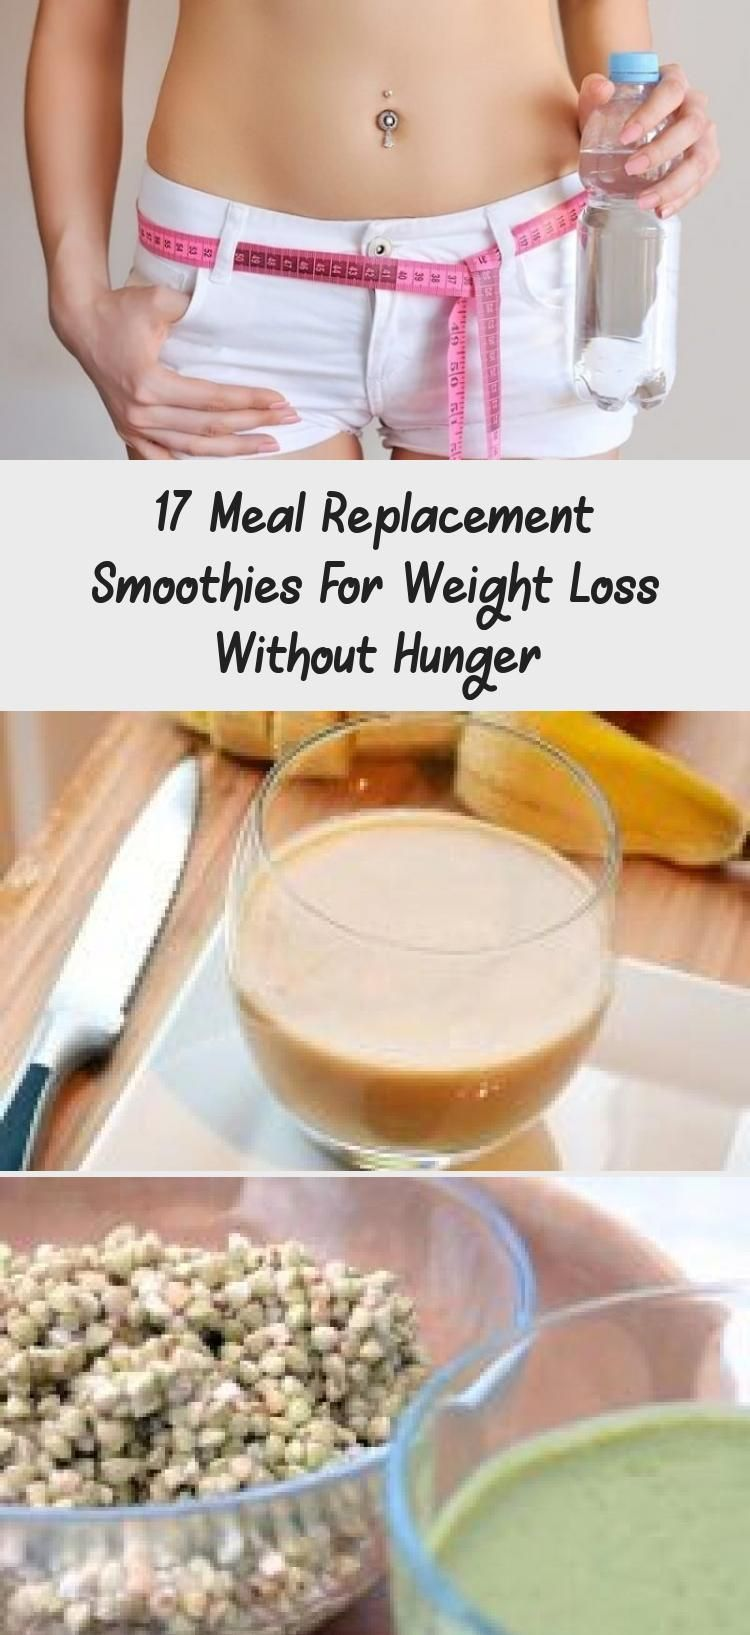 protein shake to lose weight meal replacements These meal replacement smoothies are all calorie counted and the ingredients are chosen for weight loss And best of all the...